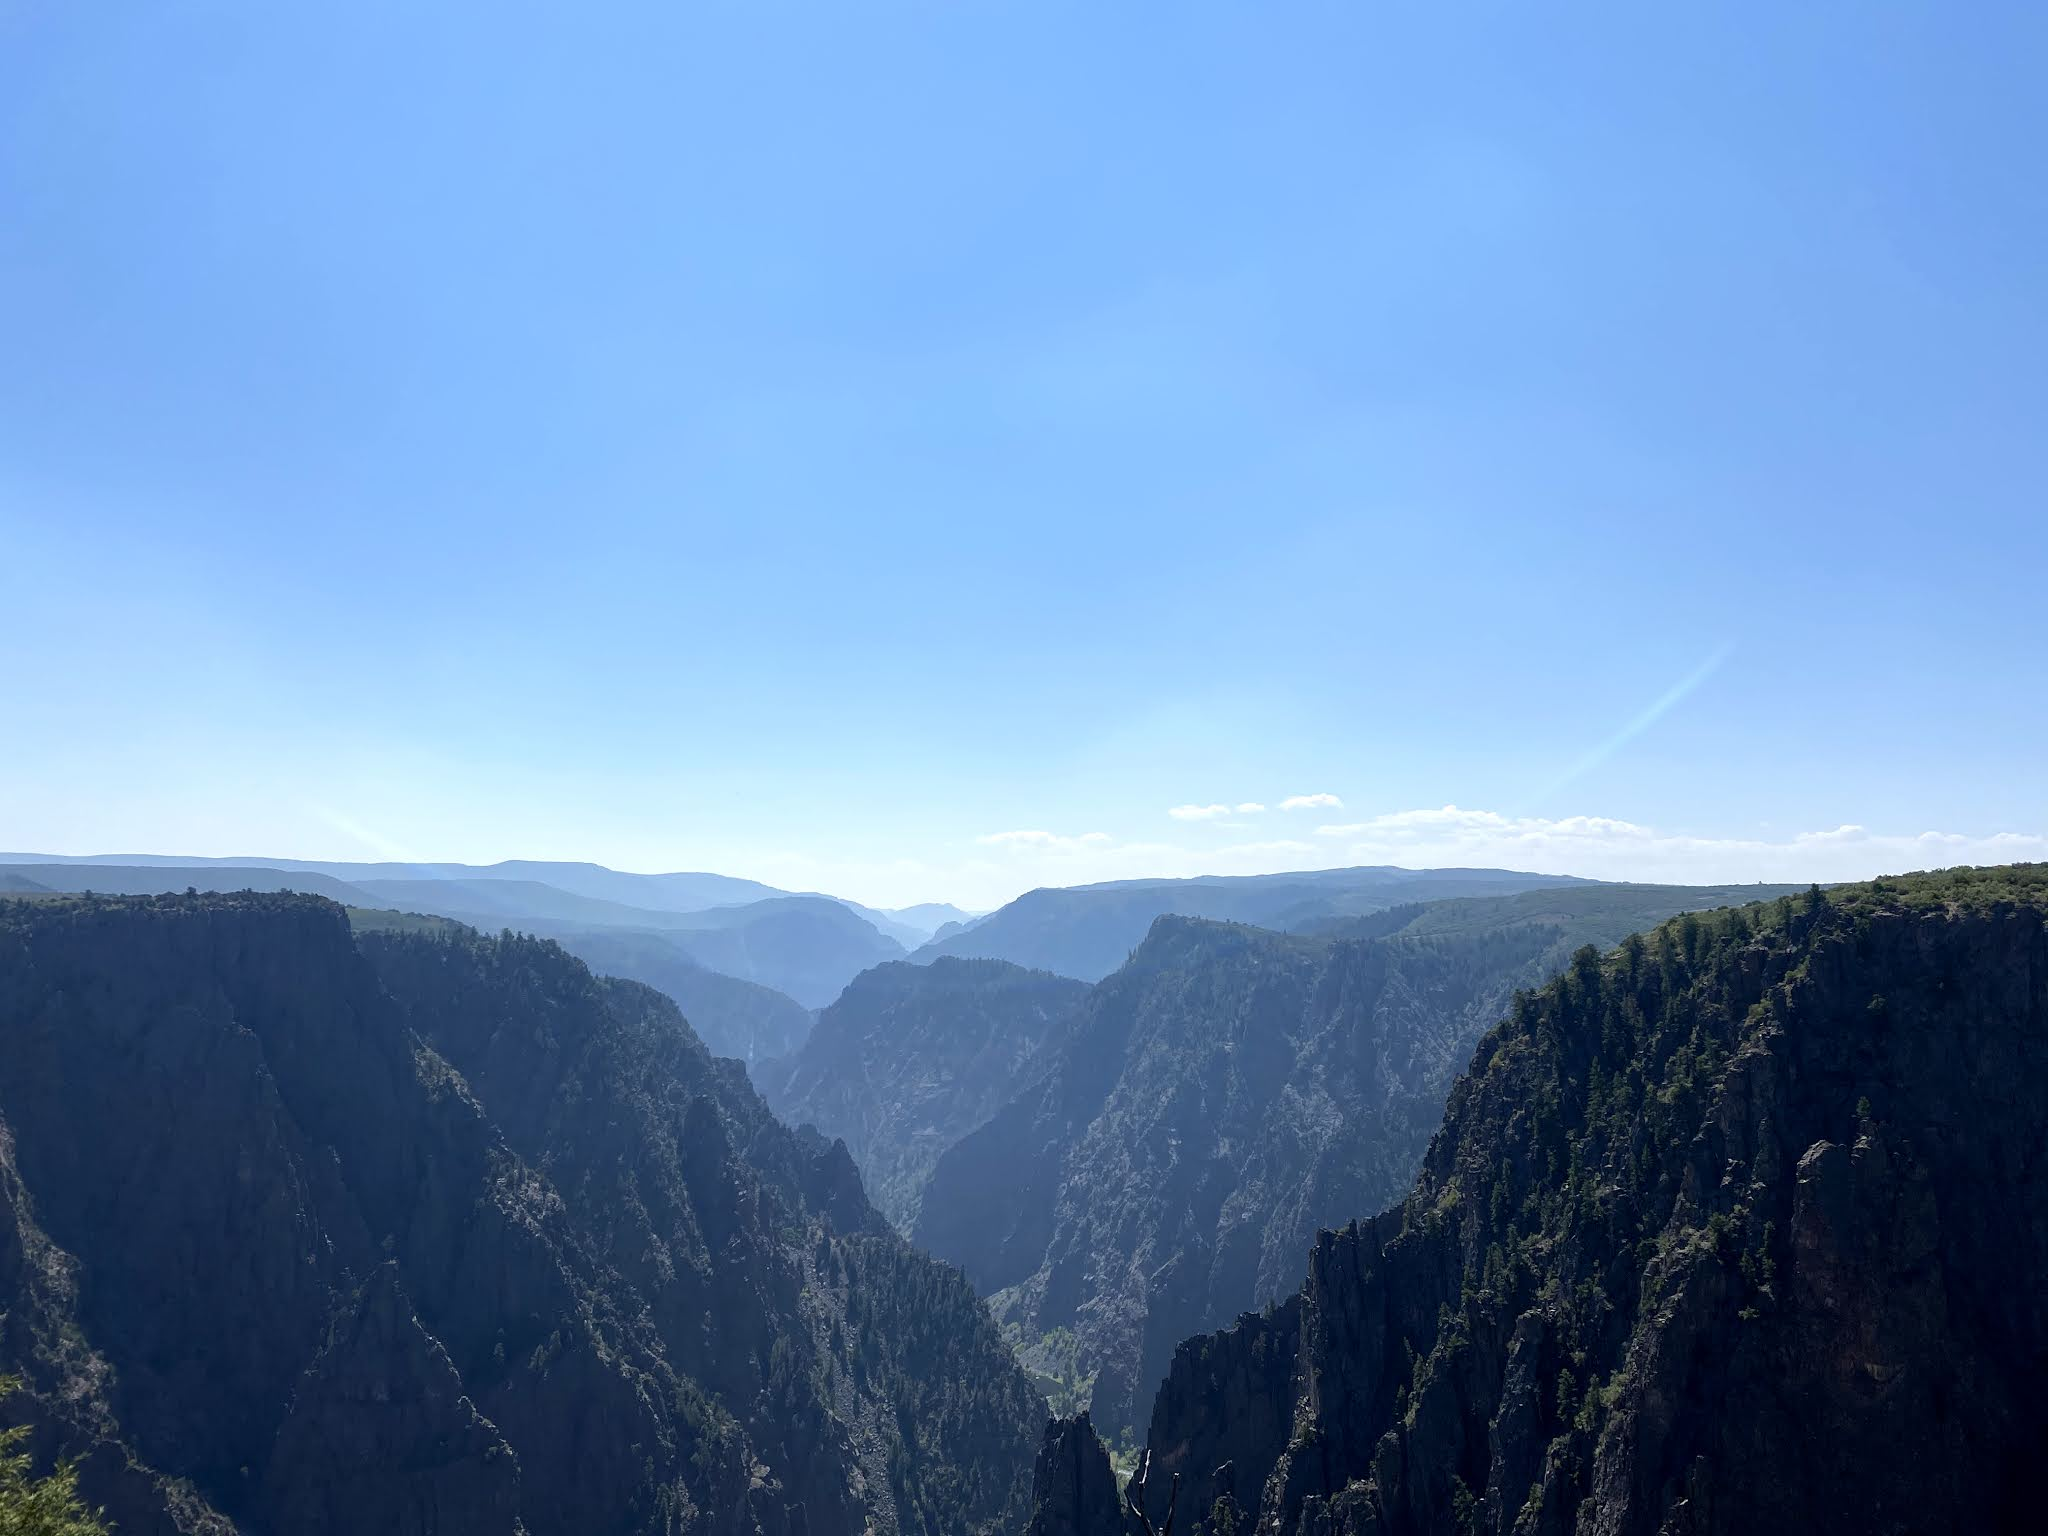 Black Canyon of the Gunnison National Park, CO | biblio-style.com